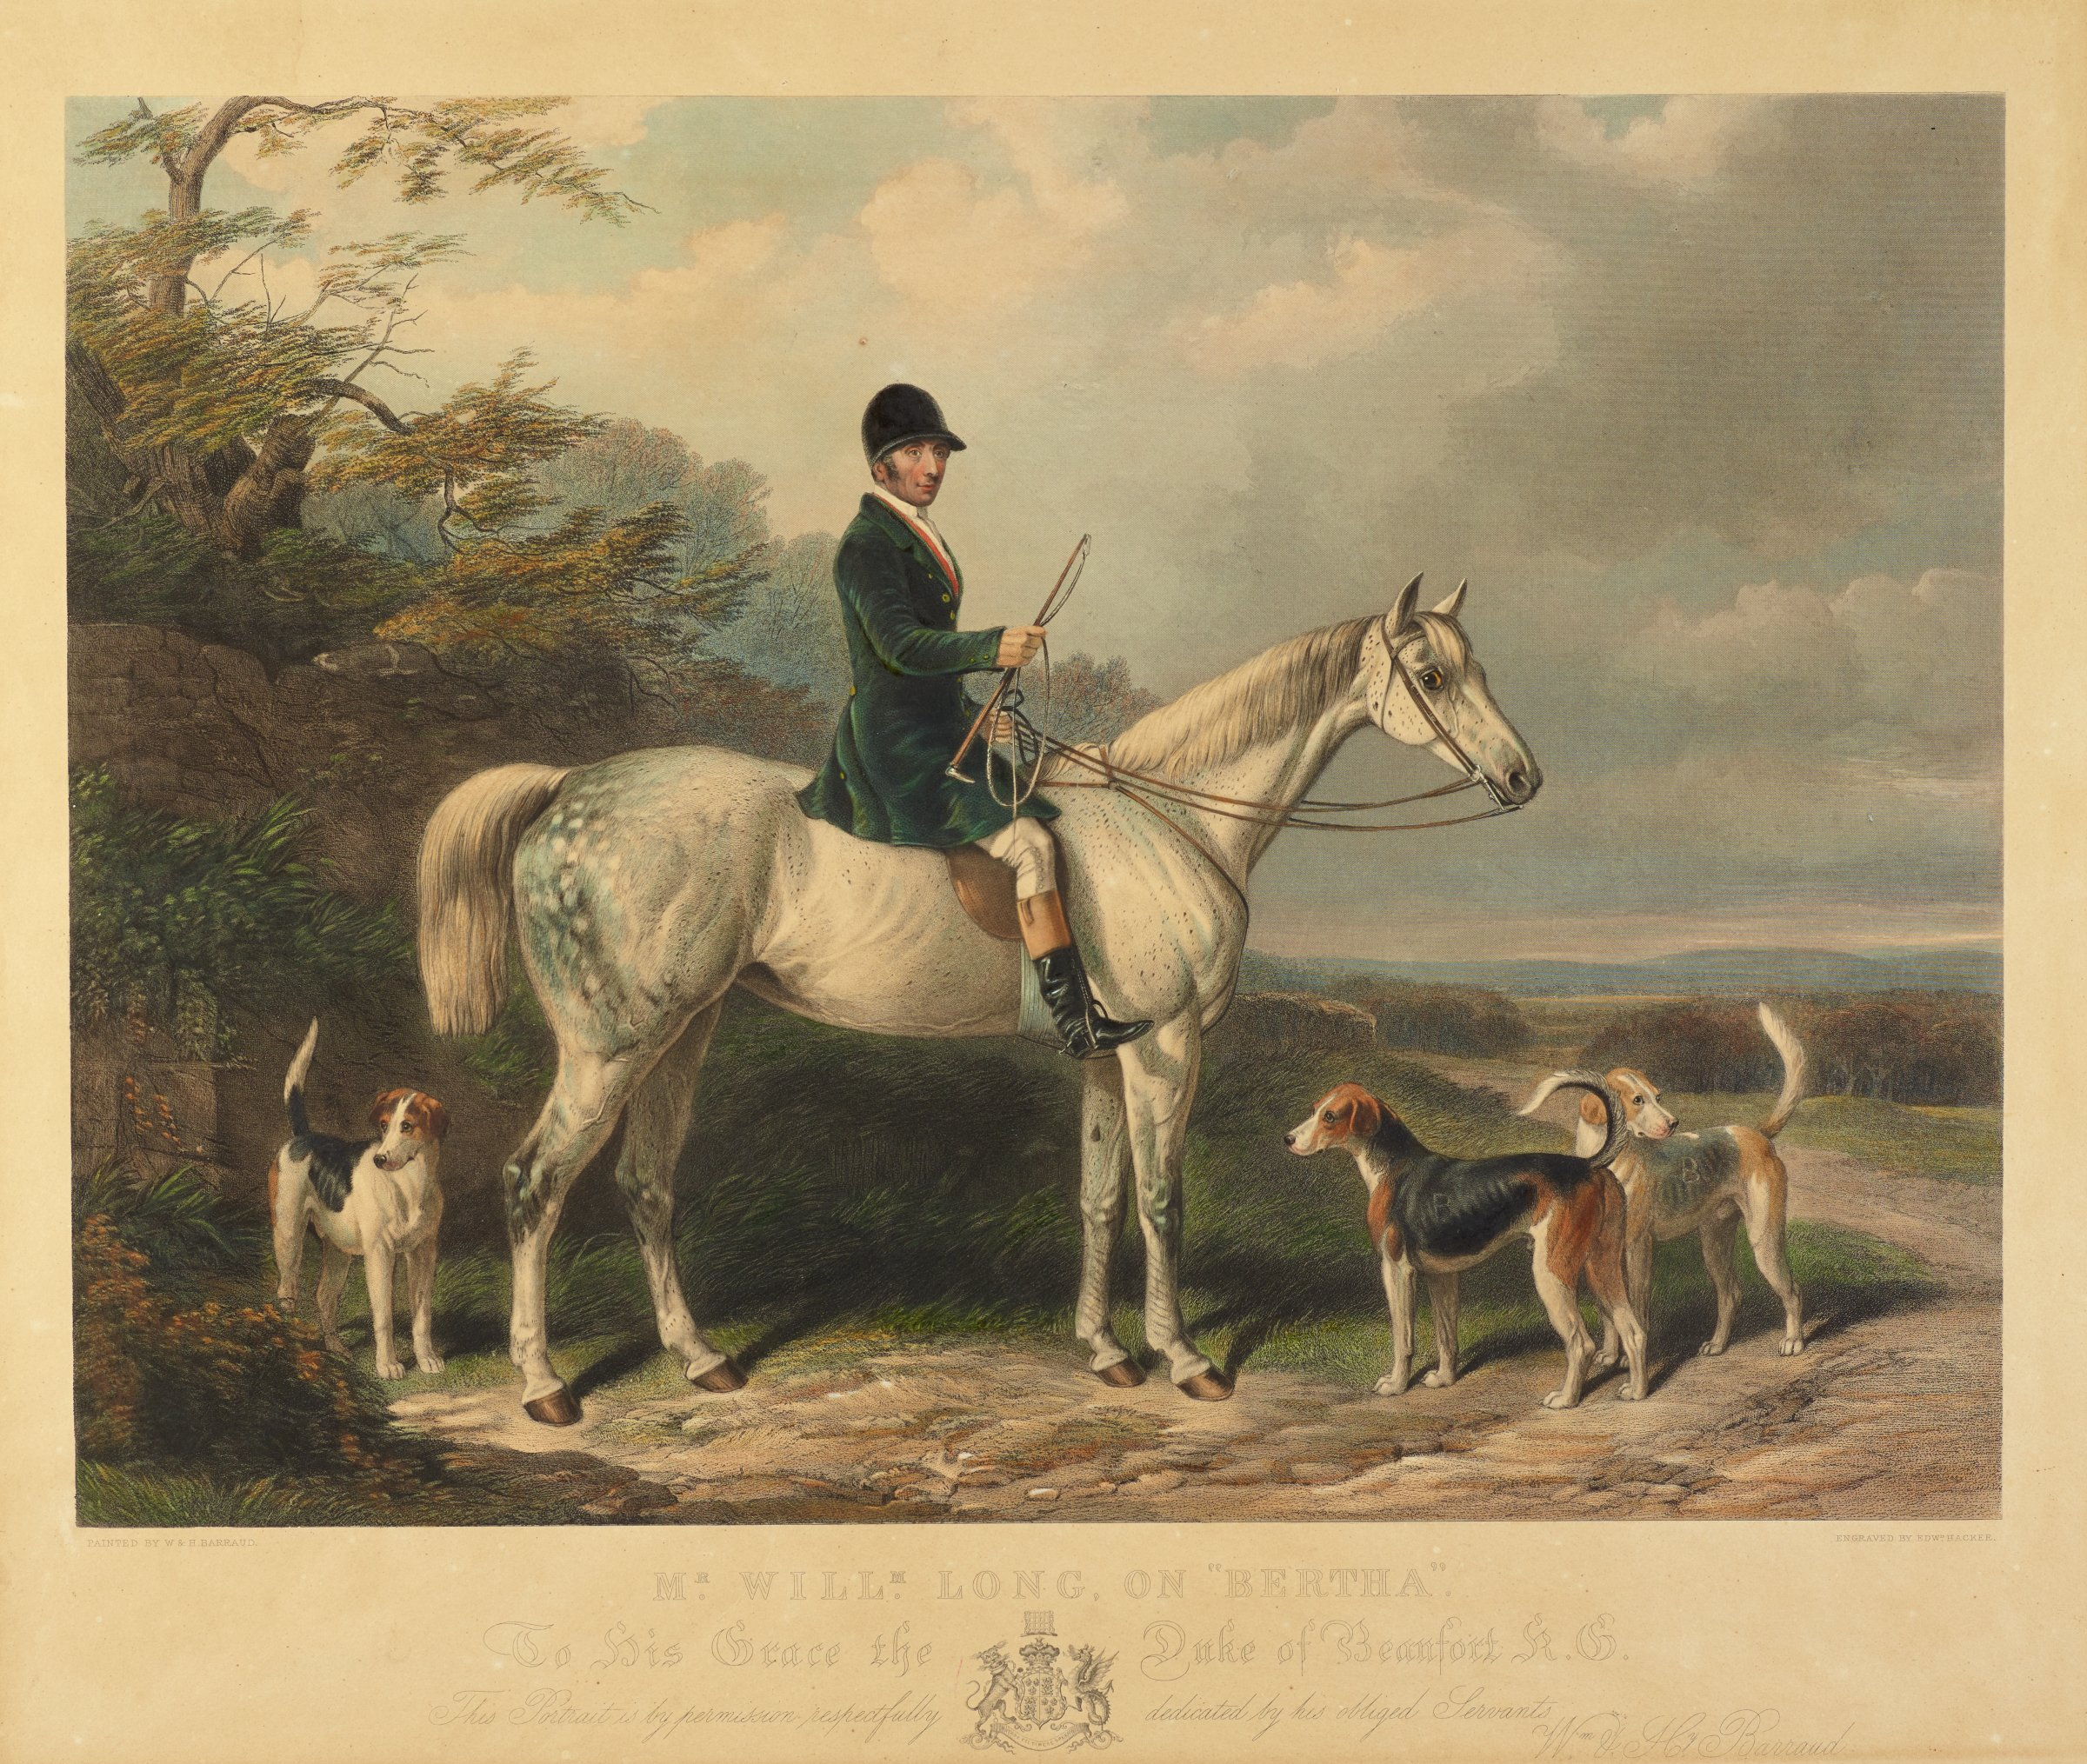 A man wearing a black helmet, a long blue coat, and riding boots sits on a white speckled horse. They stand on a path within a lush landscape. Three dogs standing alert surround the horse.